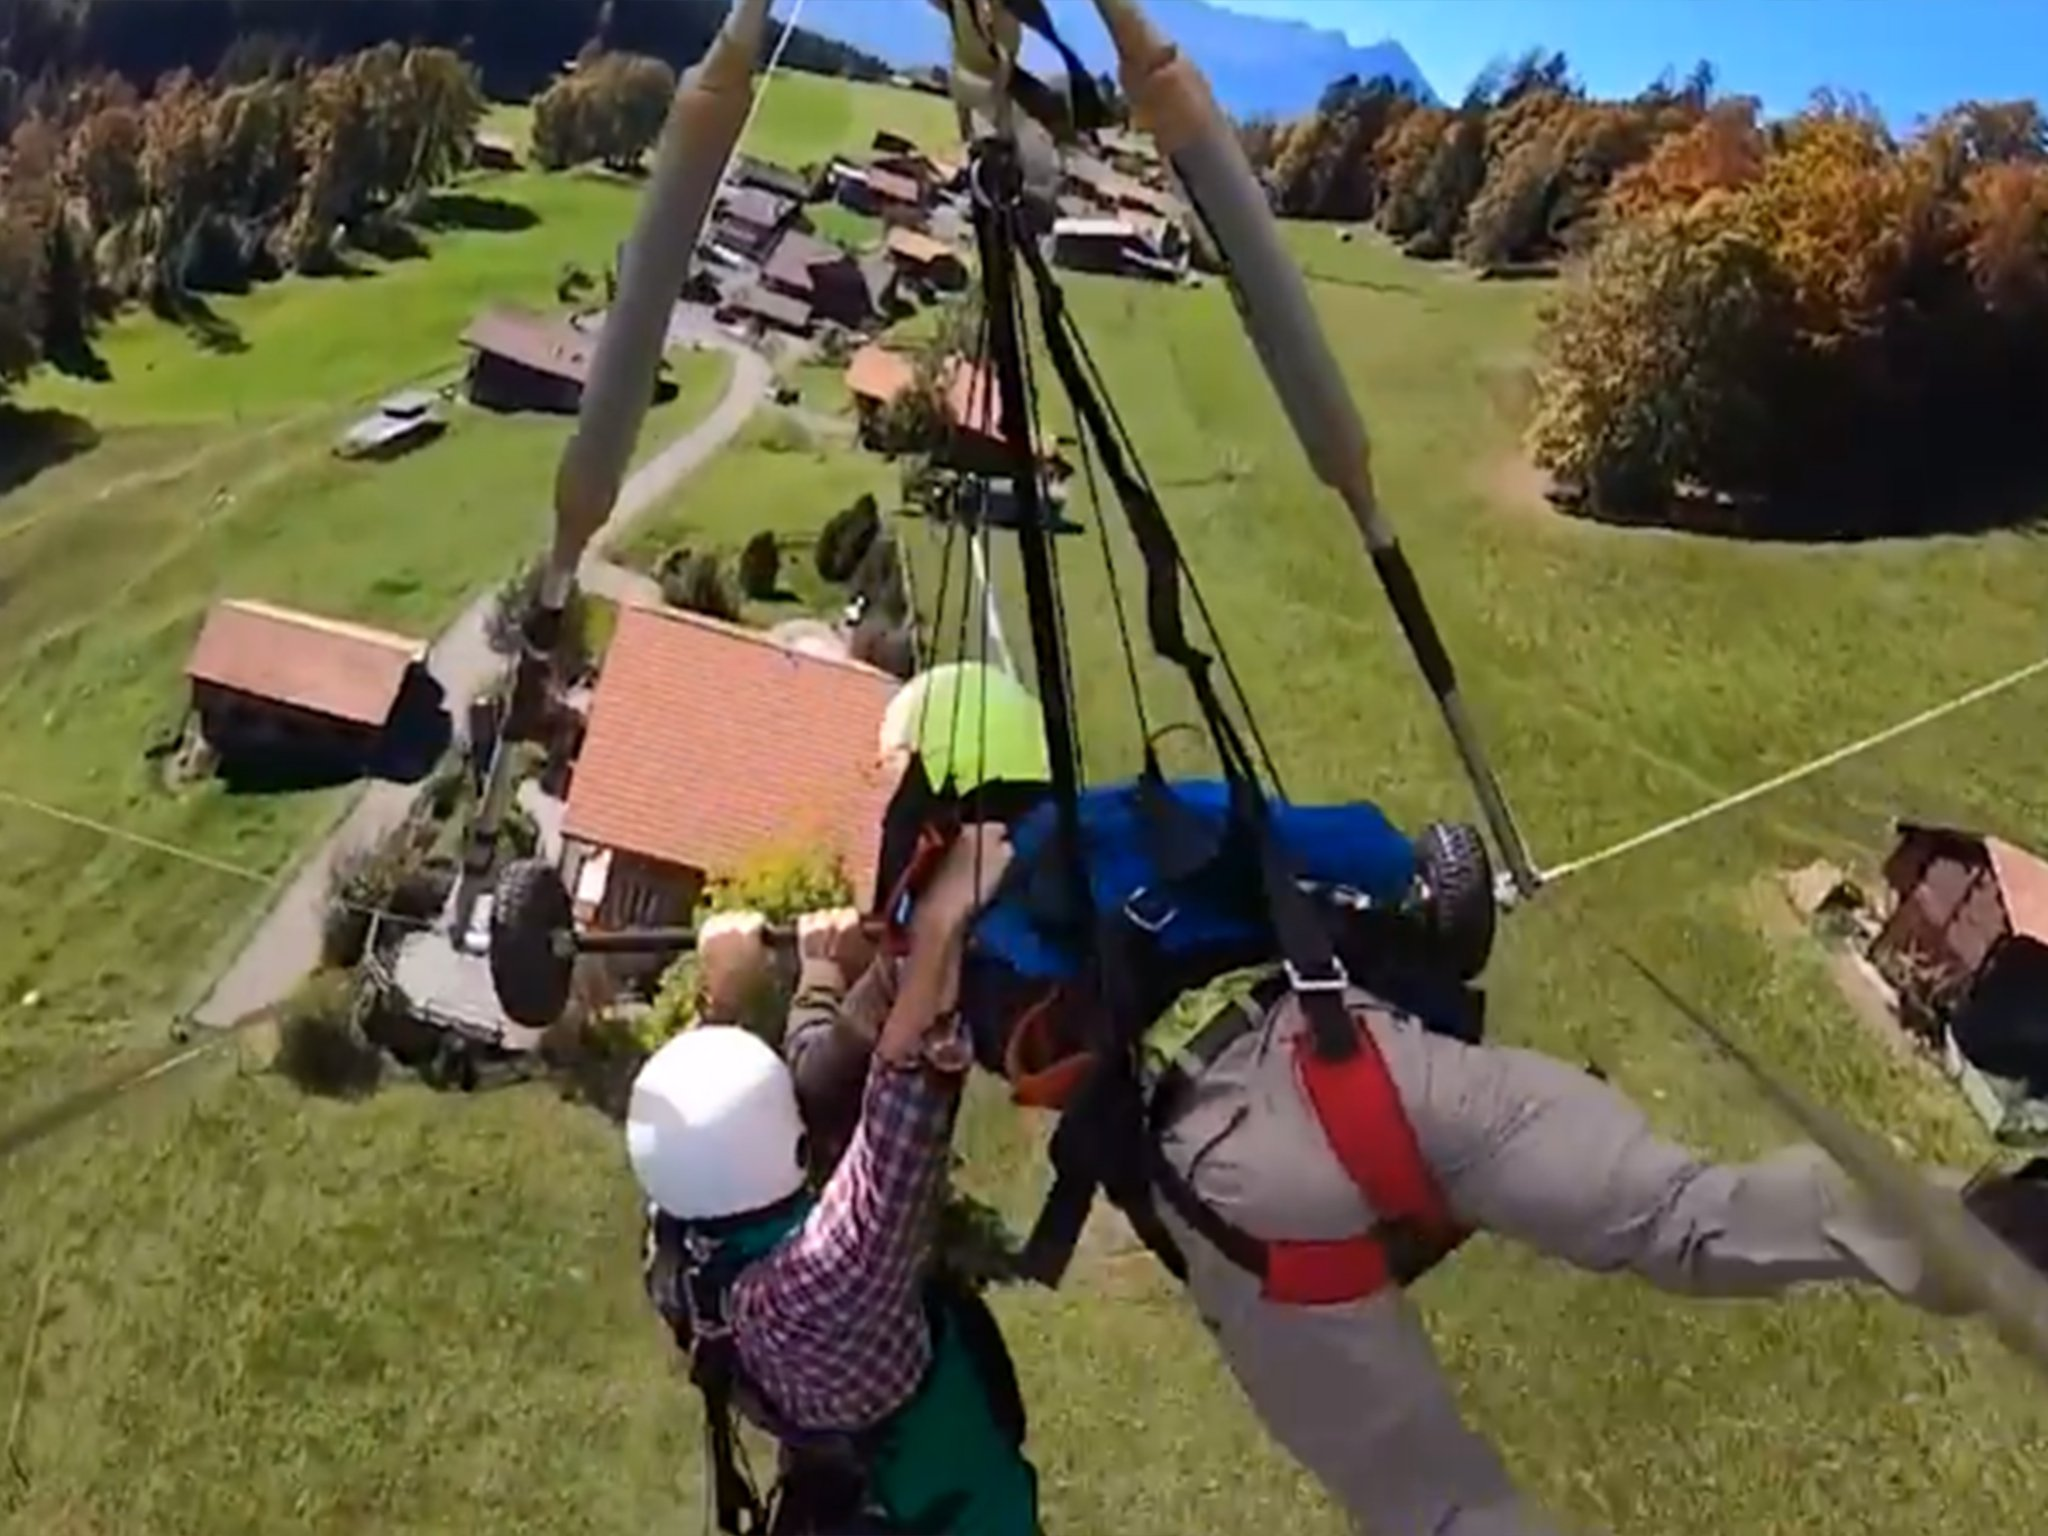 WATCH:  This is NUTS! This dude hangs on for dear life after realizing he wasn't strapped in (He's fine)